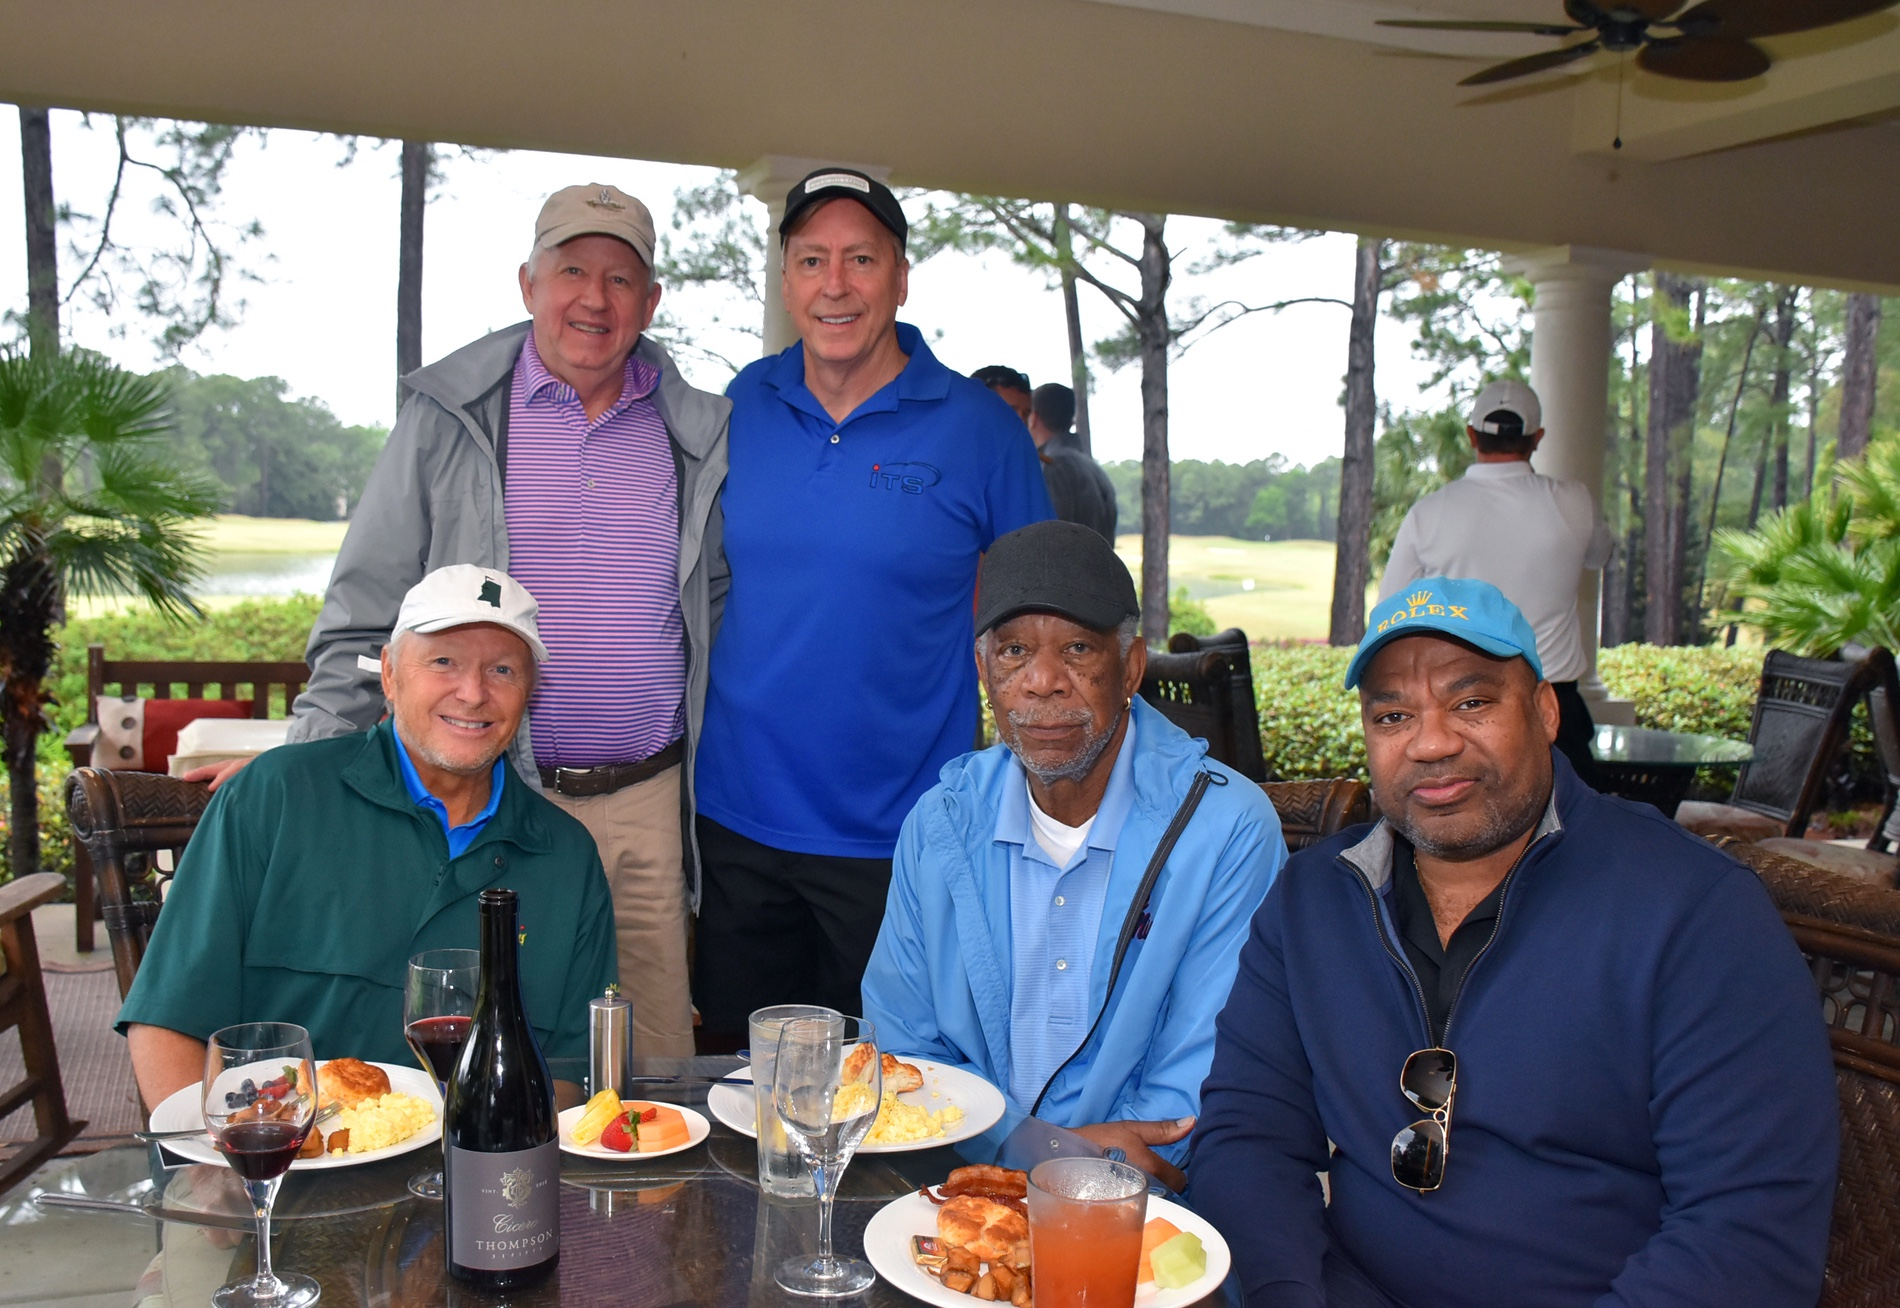 Emeril Lagasse Foundation Chi Chi Miguel Weekend 2019 Morgan Freeman Golf Tournament